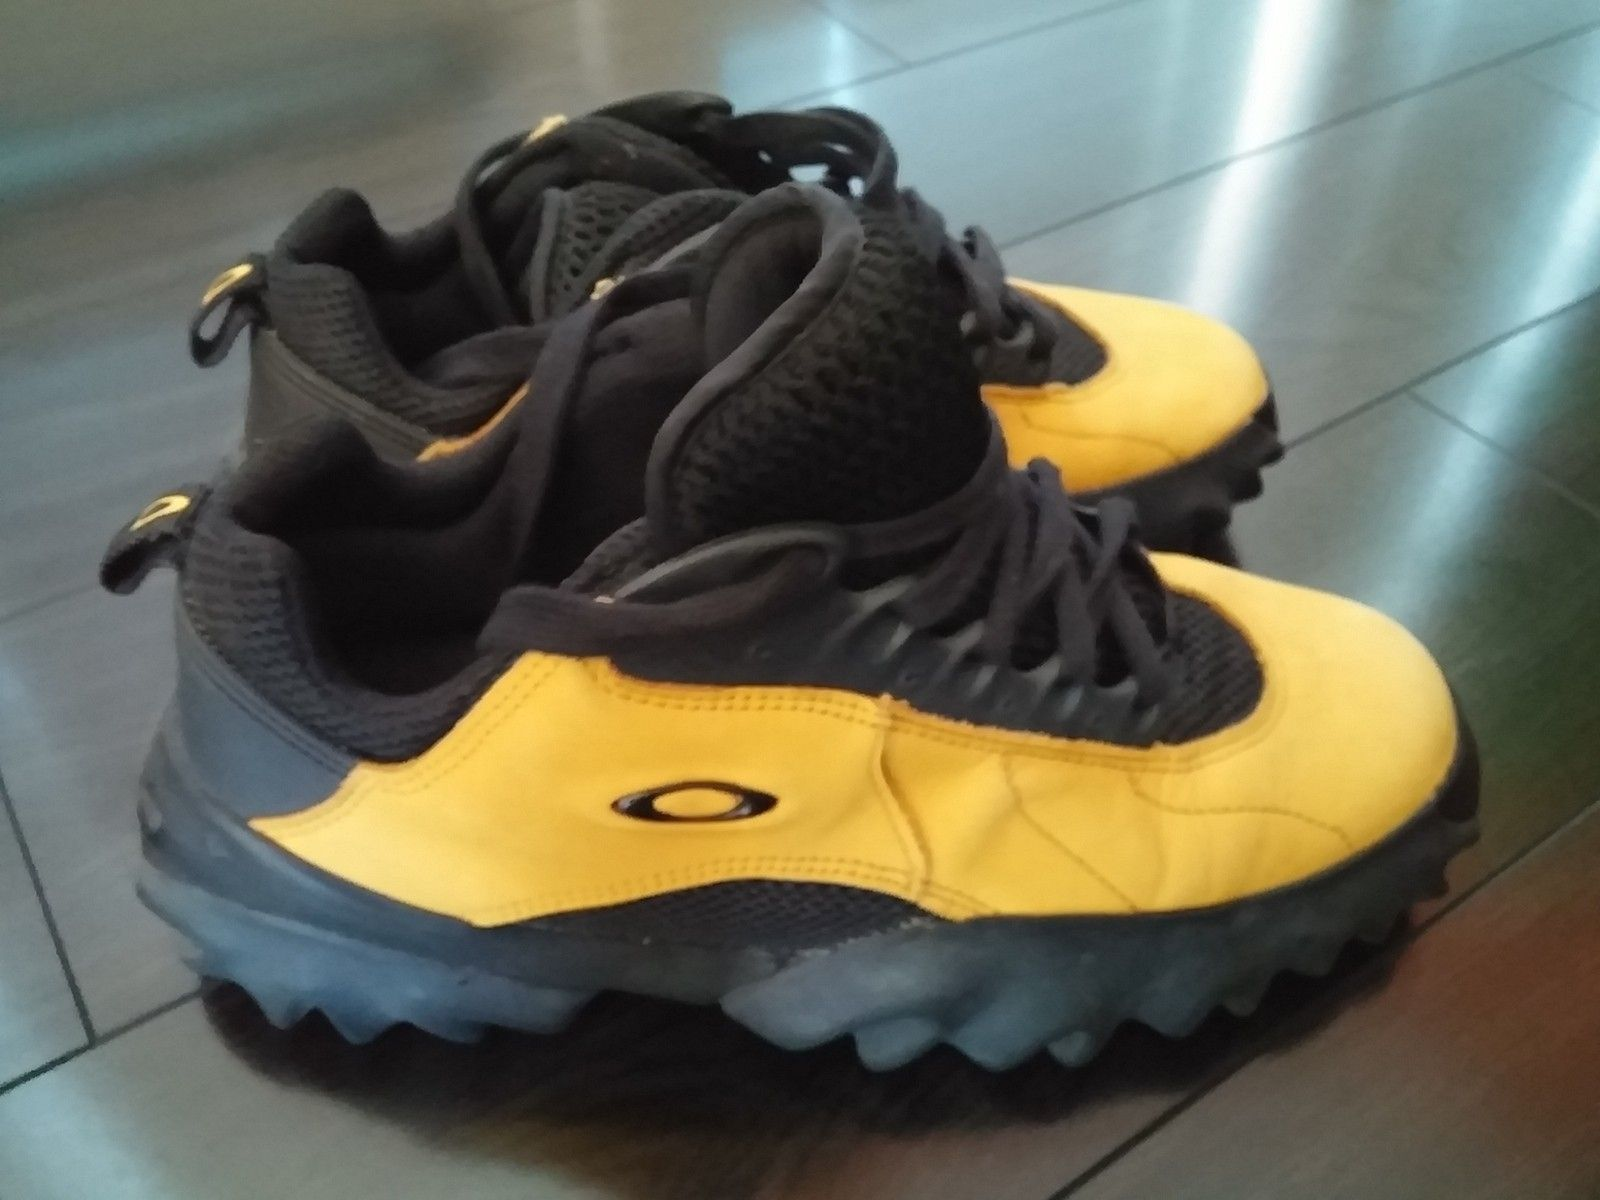 Oakley Saws and Crank Shoes 10.0 - 20150210_113414.jpg